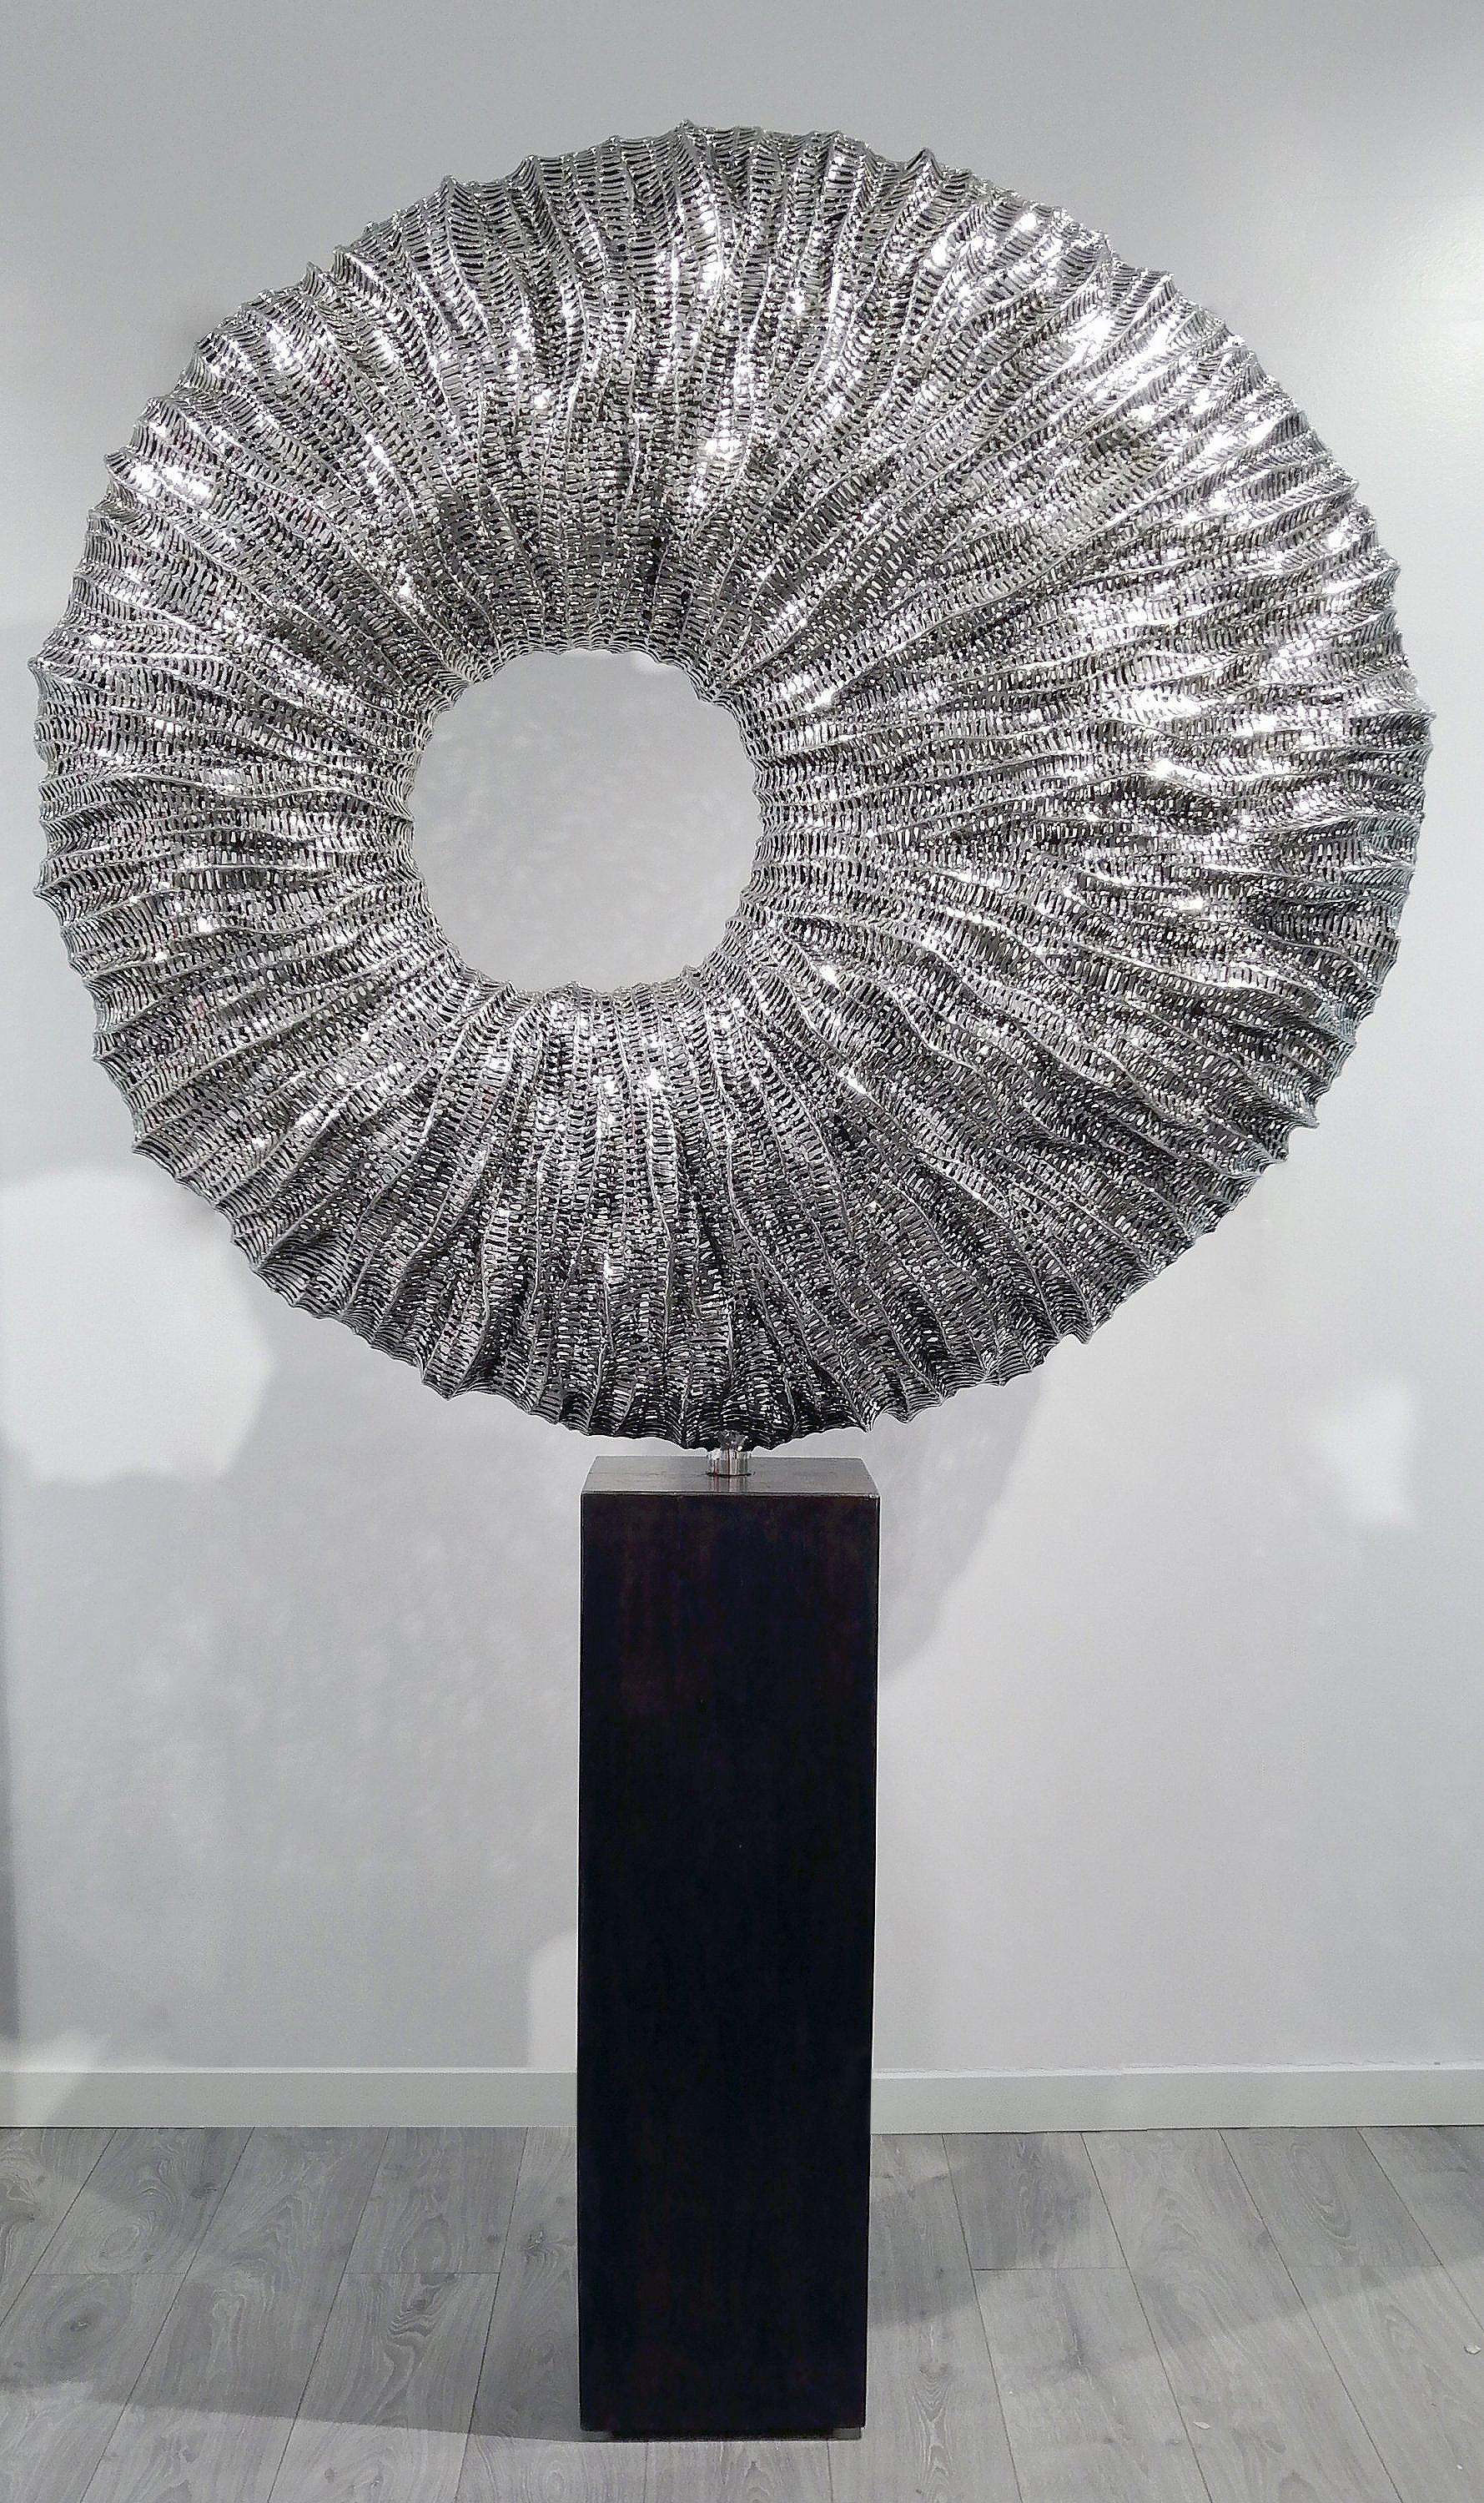 Gravity - 21st Century, Contemporary, Abstract Sculpture, Stainless Steel